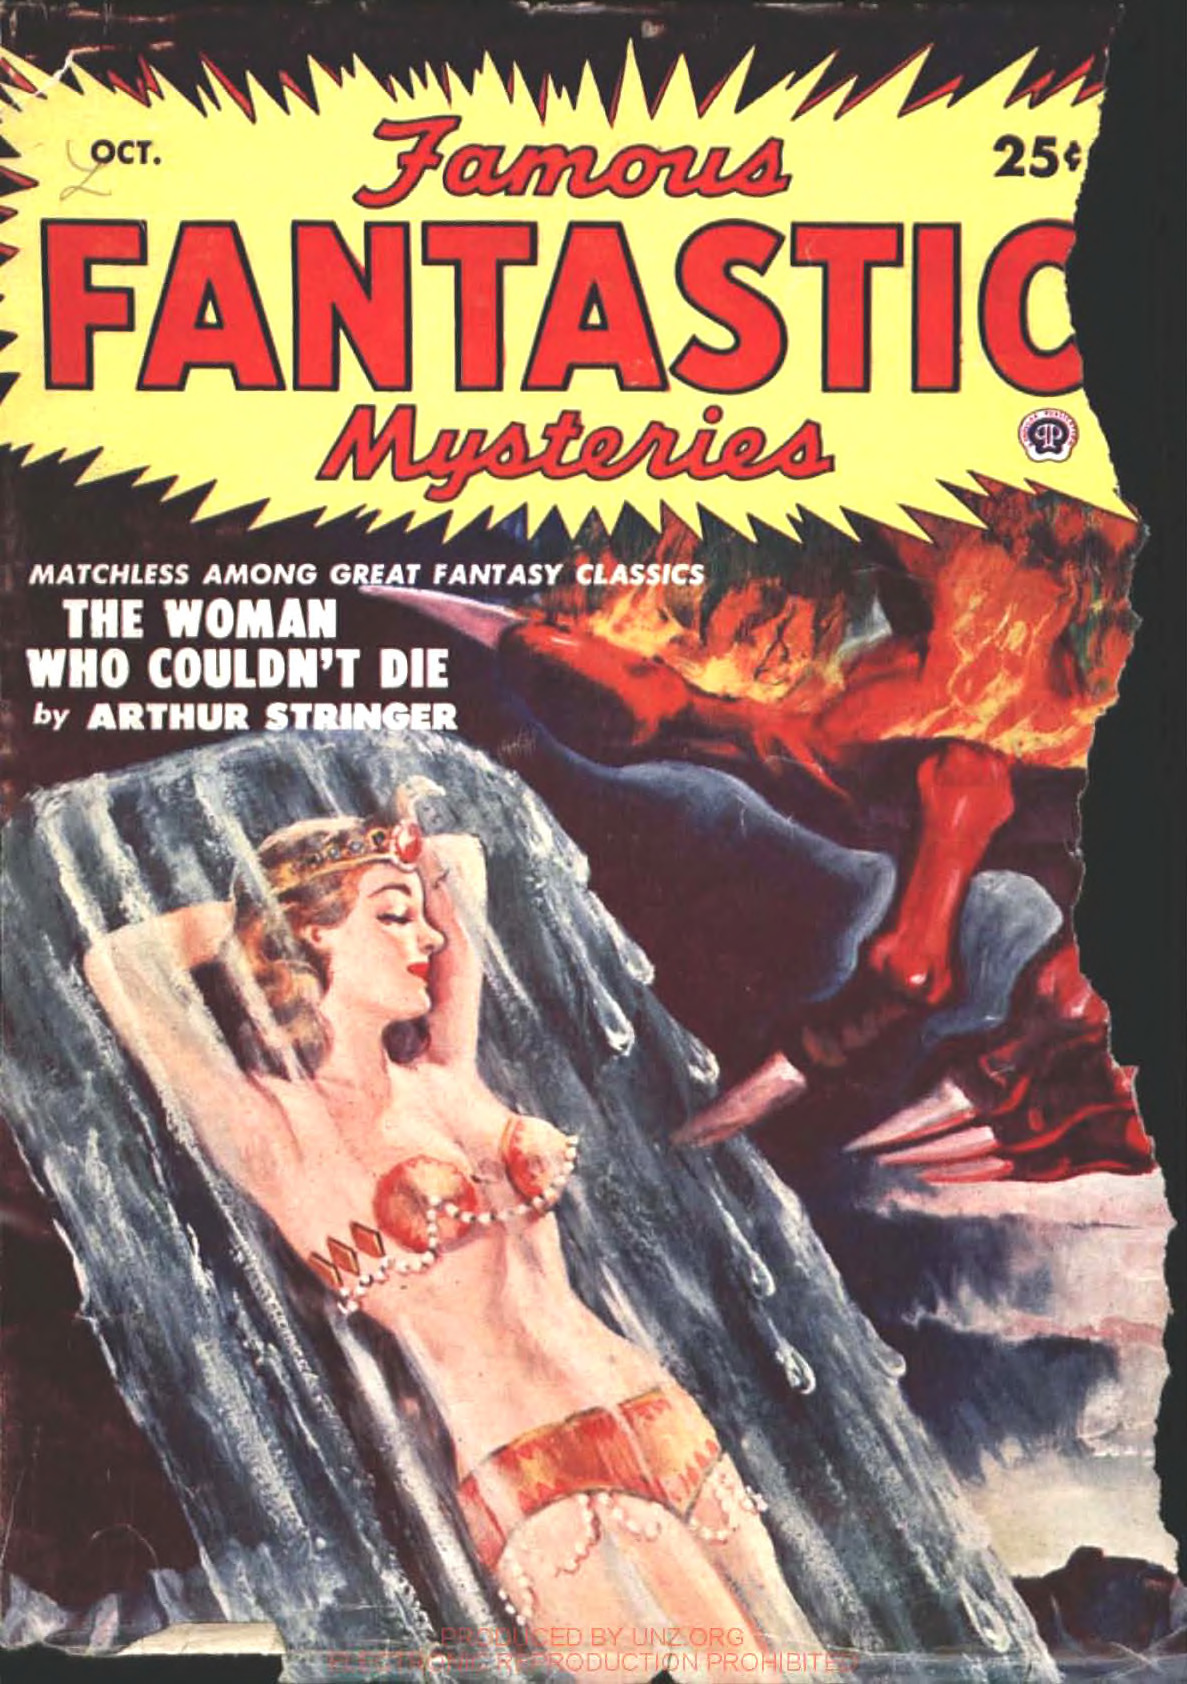 A woman frozen in a block of ice as he devil's hand reaches for her.  Cover of Famous Fantastic Mysteries October 1950, painted by Rafael DeSoto.